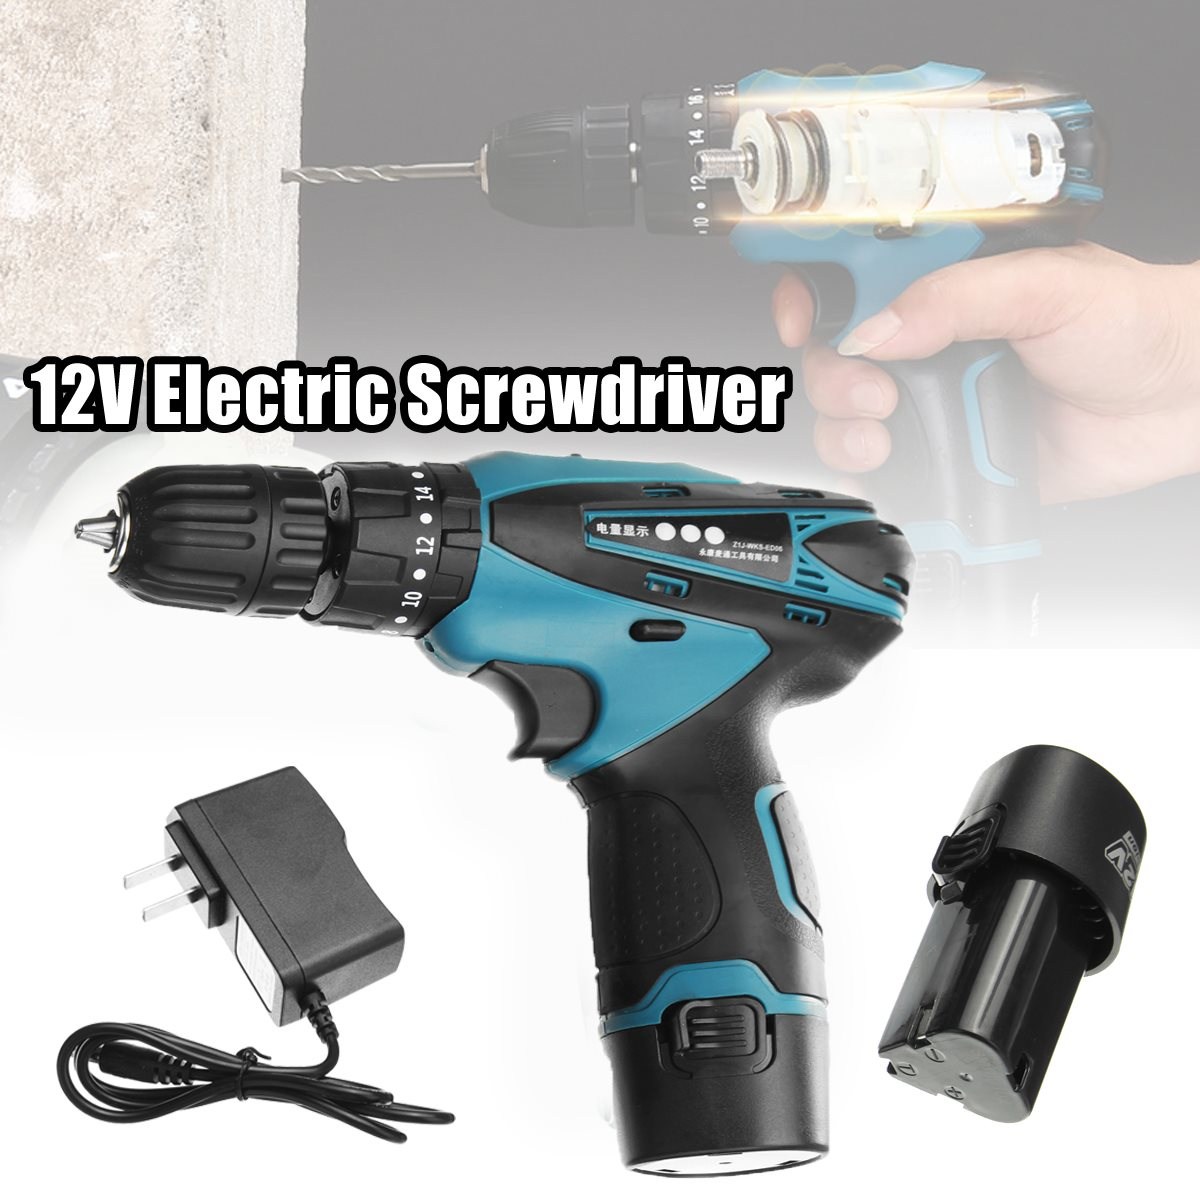 12V Electric Screwdriver Two Speed Multi-function Cordless Charging Drill Bit 2Pcs Battery Rechargeable Electric Screwdriver free shipping brand proskit upt 32007d frequency modulated electric screwdriver 2 electric screwdriver bit 900 1300rpm tools